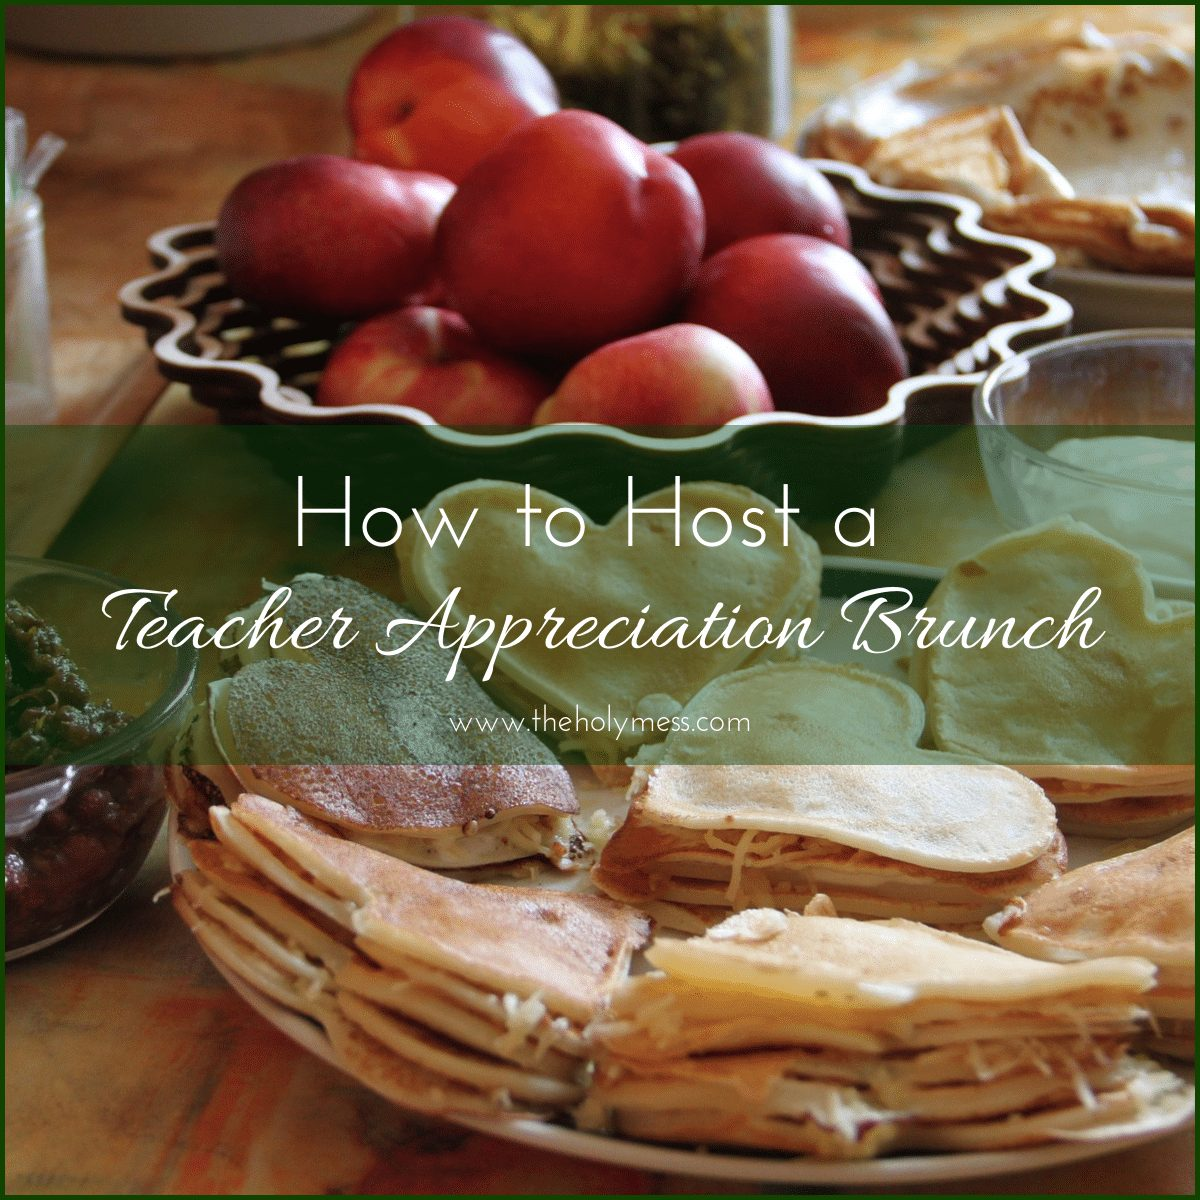 How to Host a Teacher Appreciation Brunch|The Holy Mess